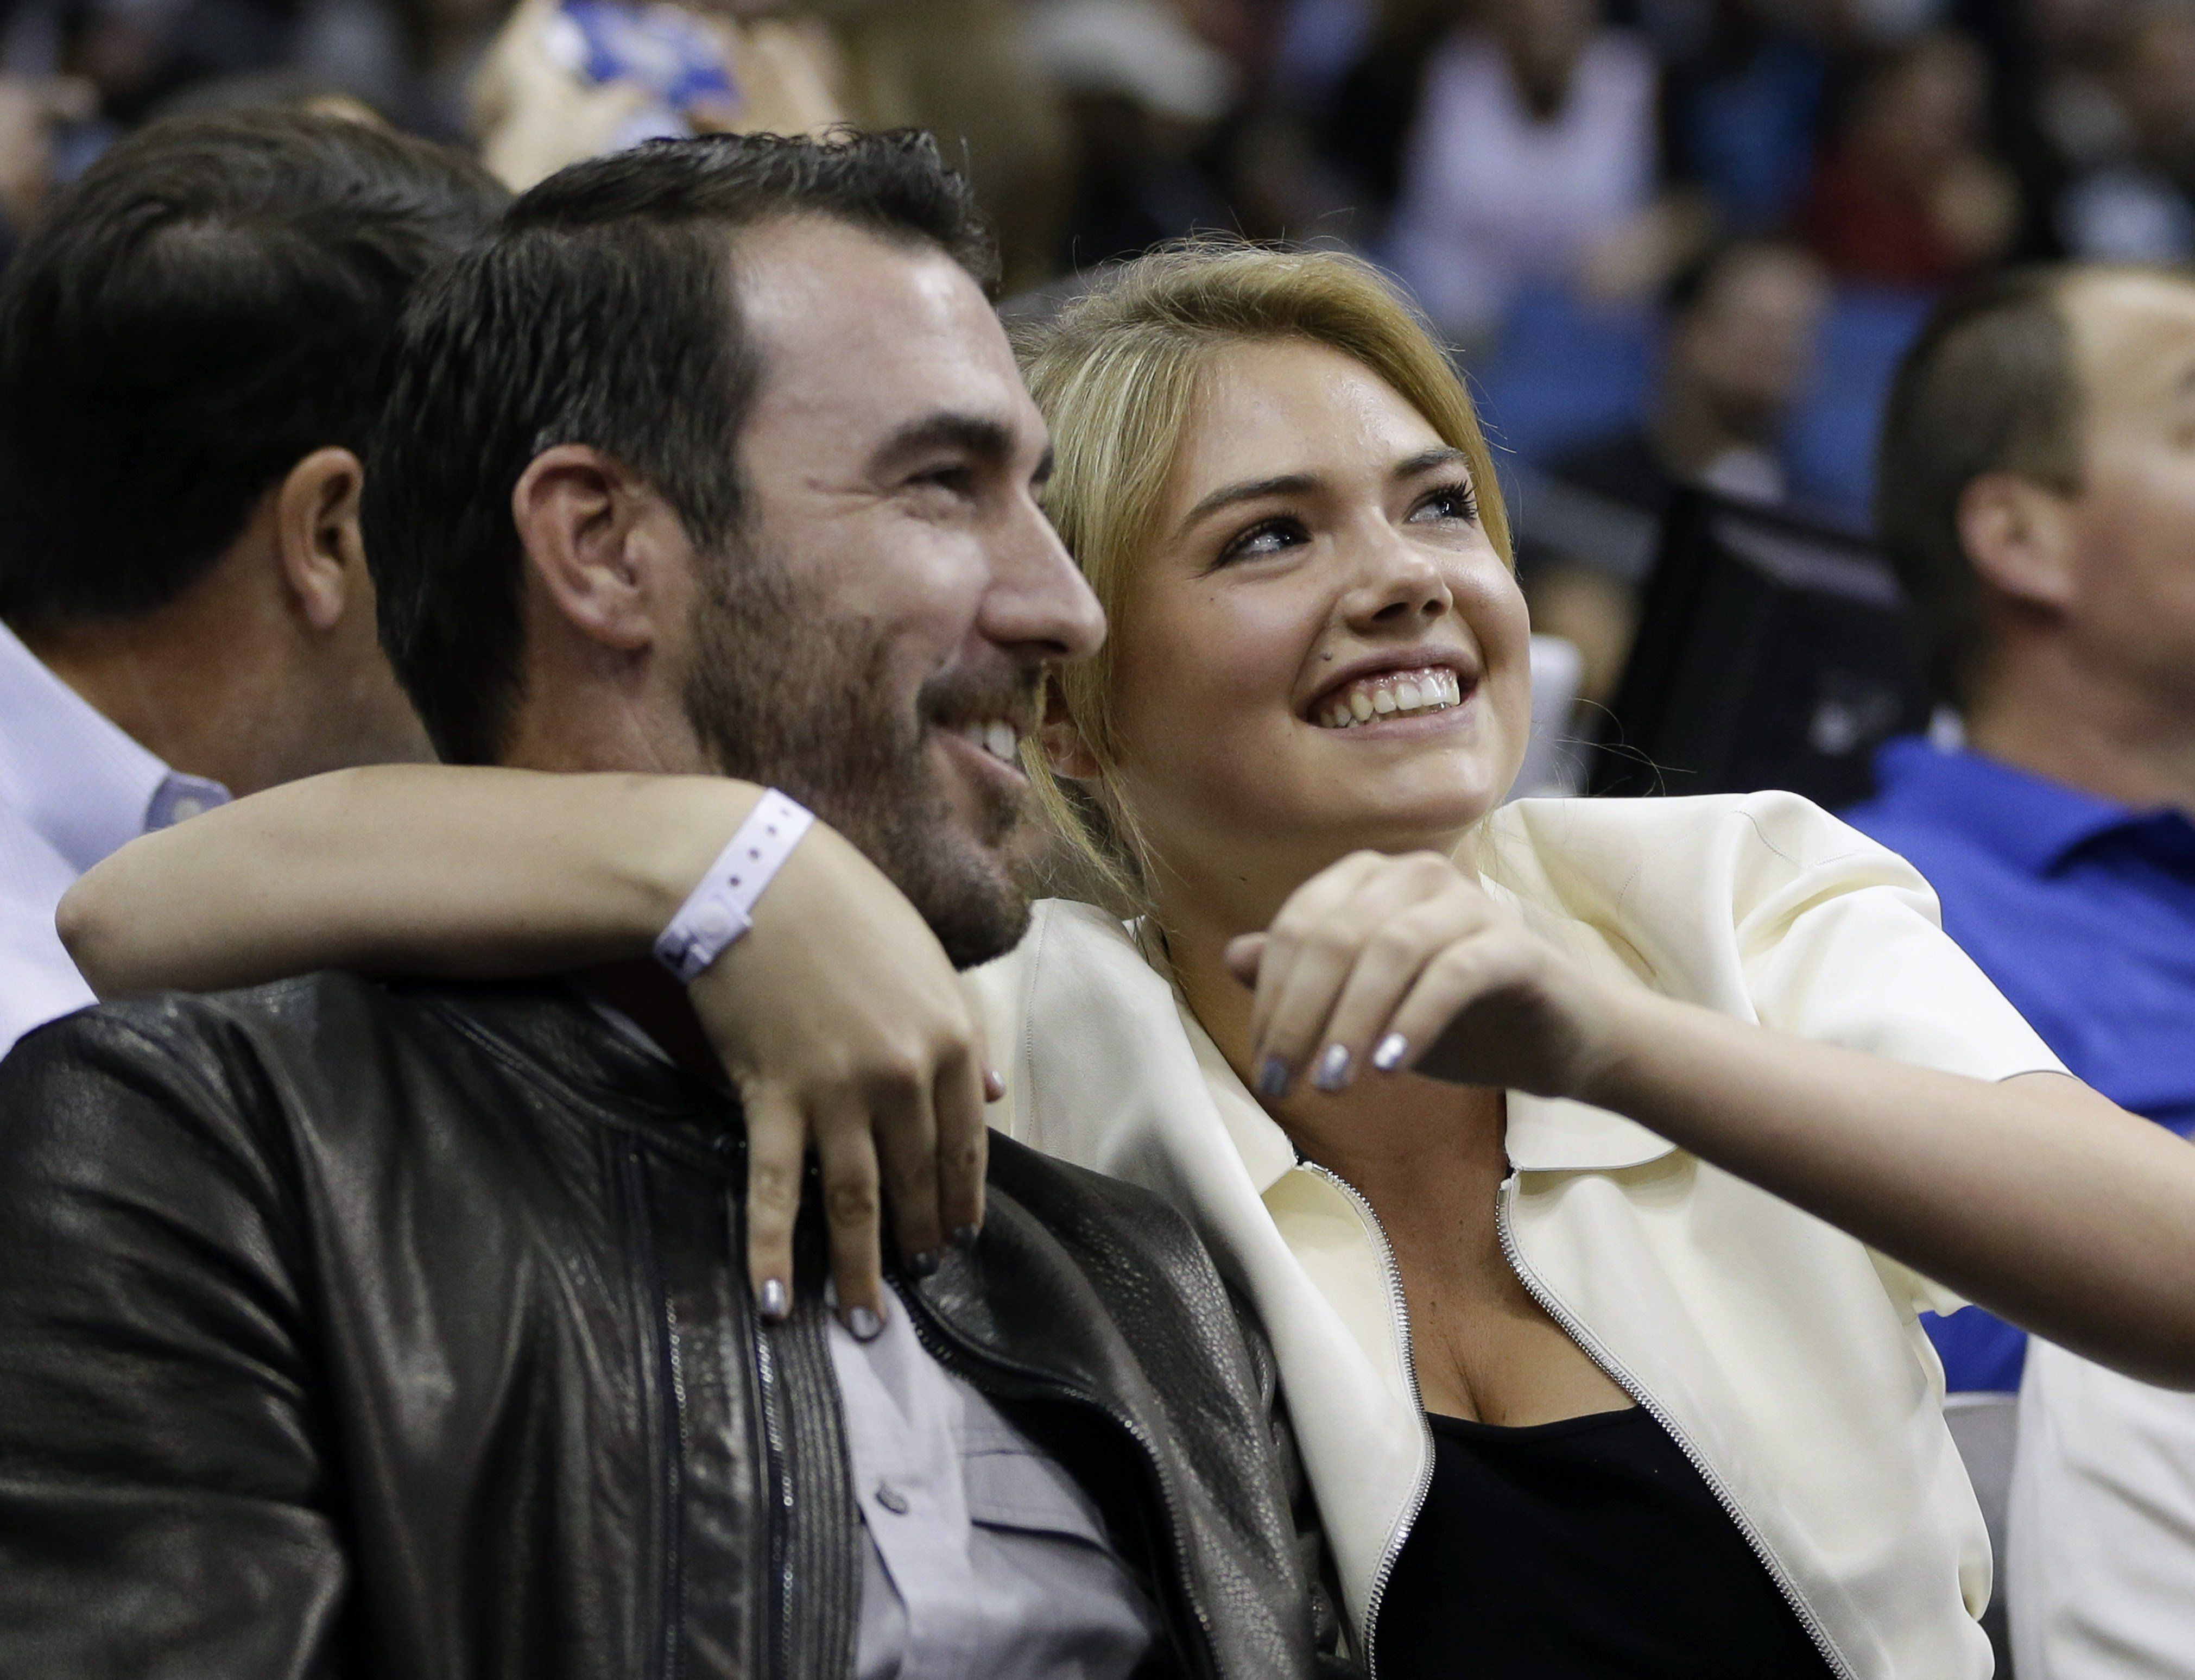 Detroit Tigers pitcher Justin Verlander, left, and model Kate Upton watch the first half of an NBA basketball game between the Orlando Magic and the Oklahoma City Thunder in Orlando, Fla., Friday, Feb. 7, 2014. (AP Photo/John Raoux)